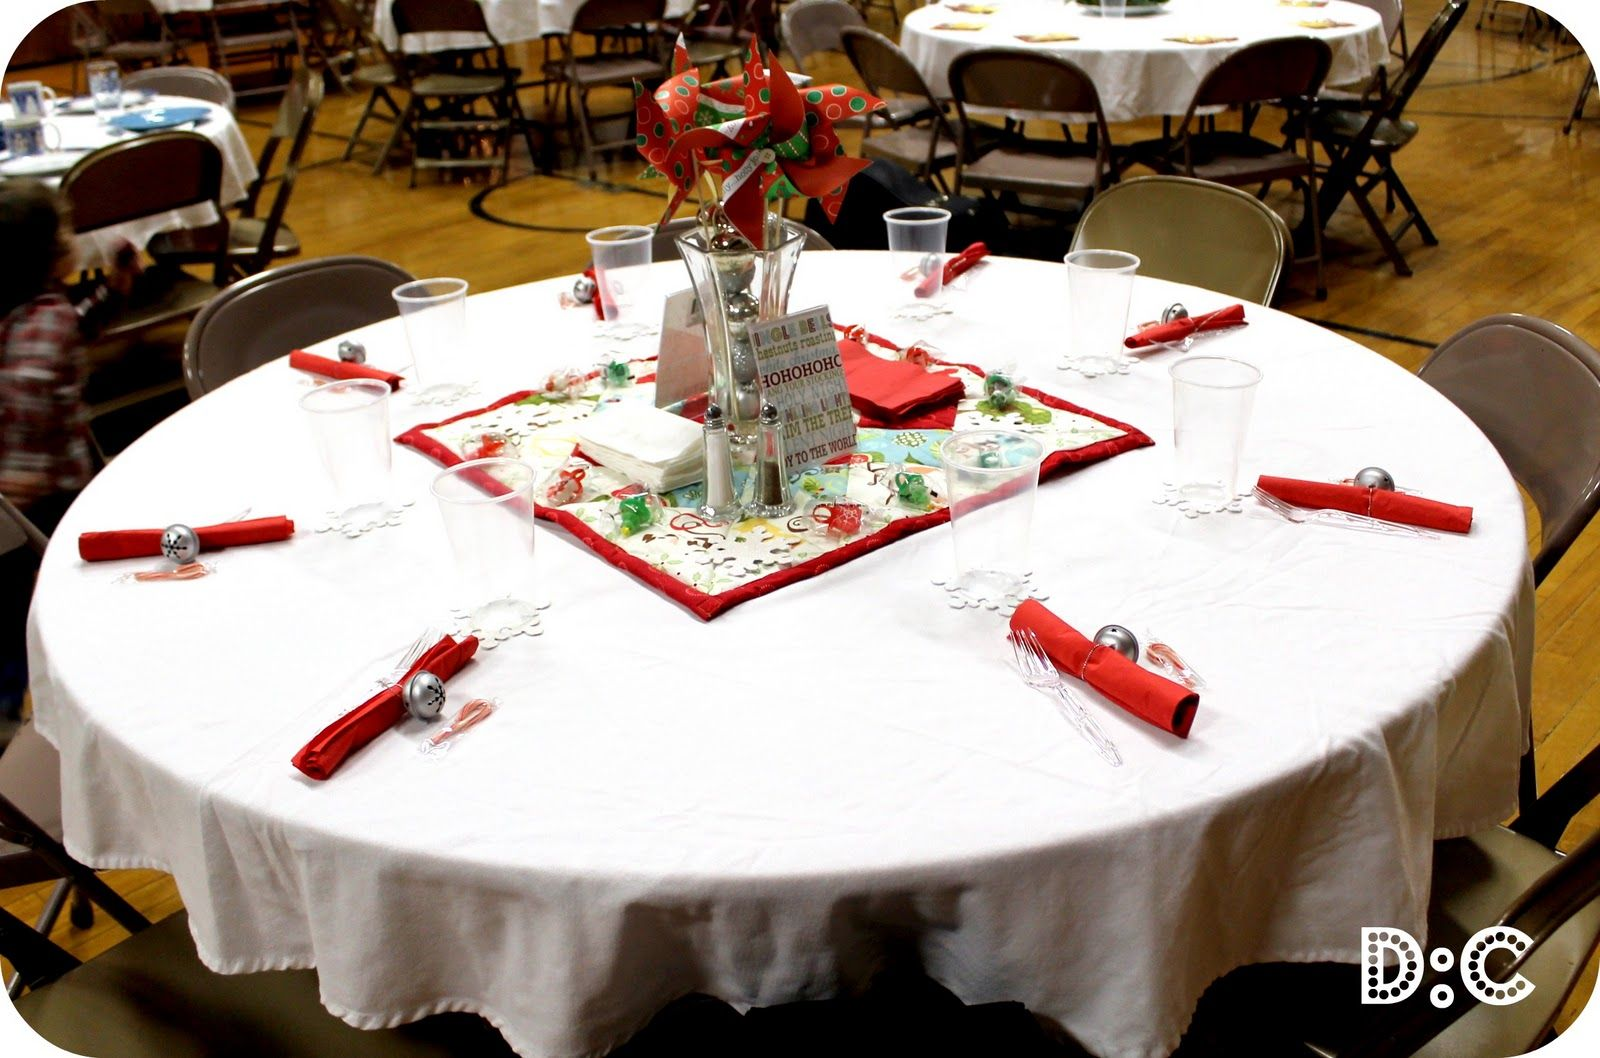 Christmas Party Table Christmas Party Decor Part 2 Christmas Party Table Christmas Party Table Decorations Christmas Decorations Cheap